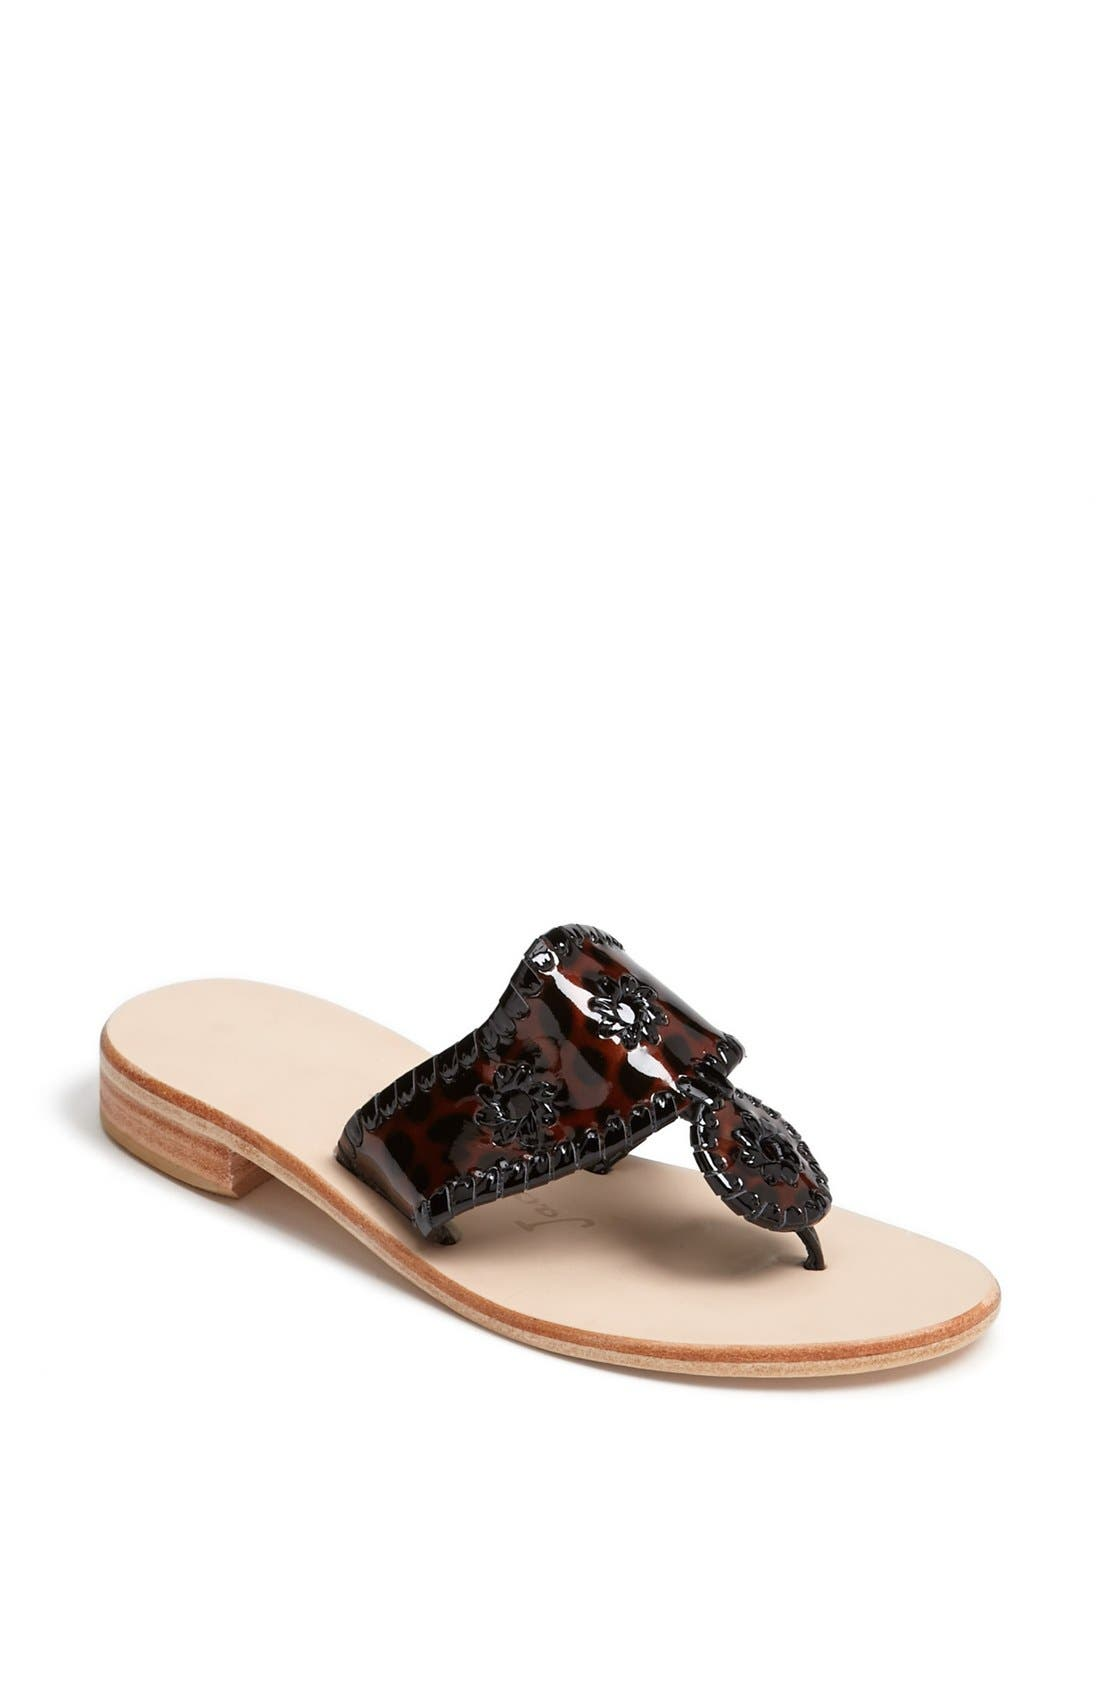 Alternate Image 1 Selected - Jack Rogers Black Label Sandal